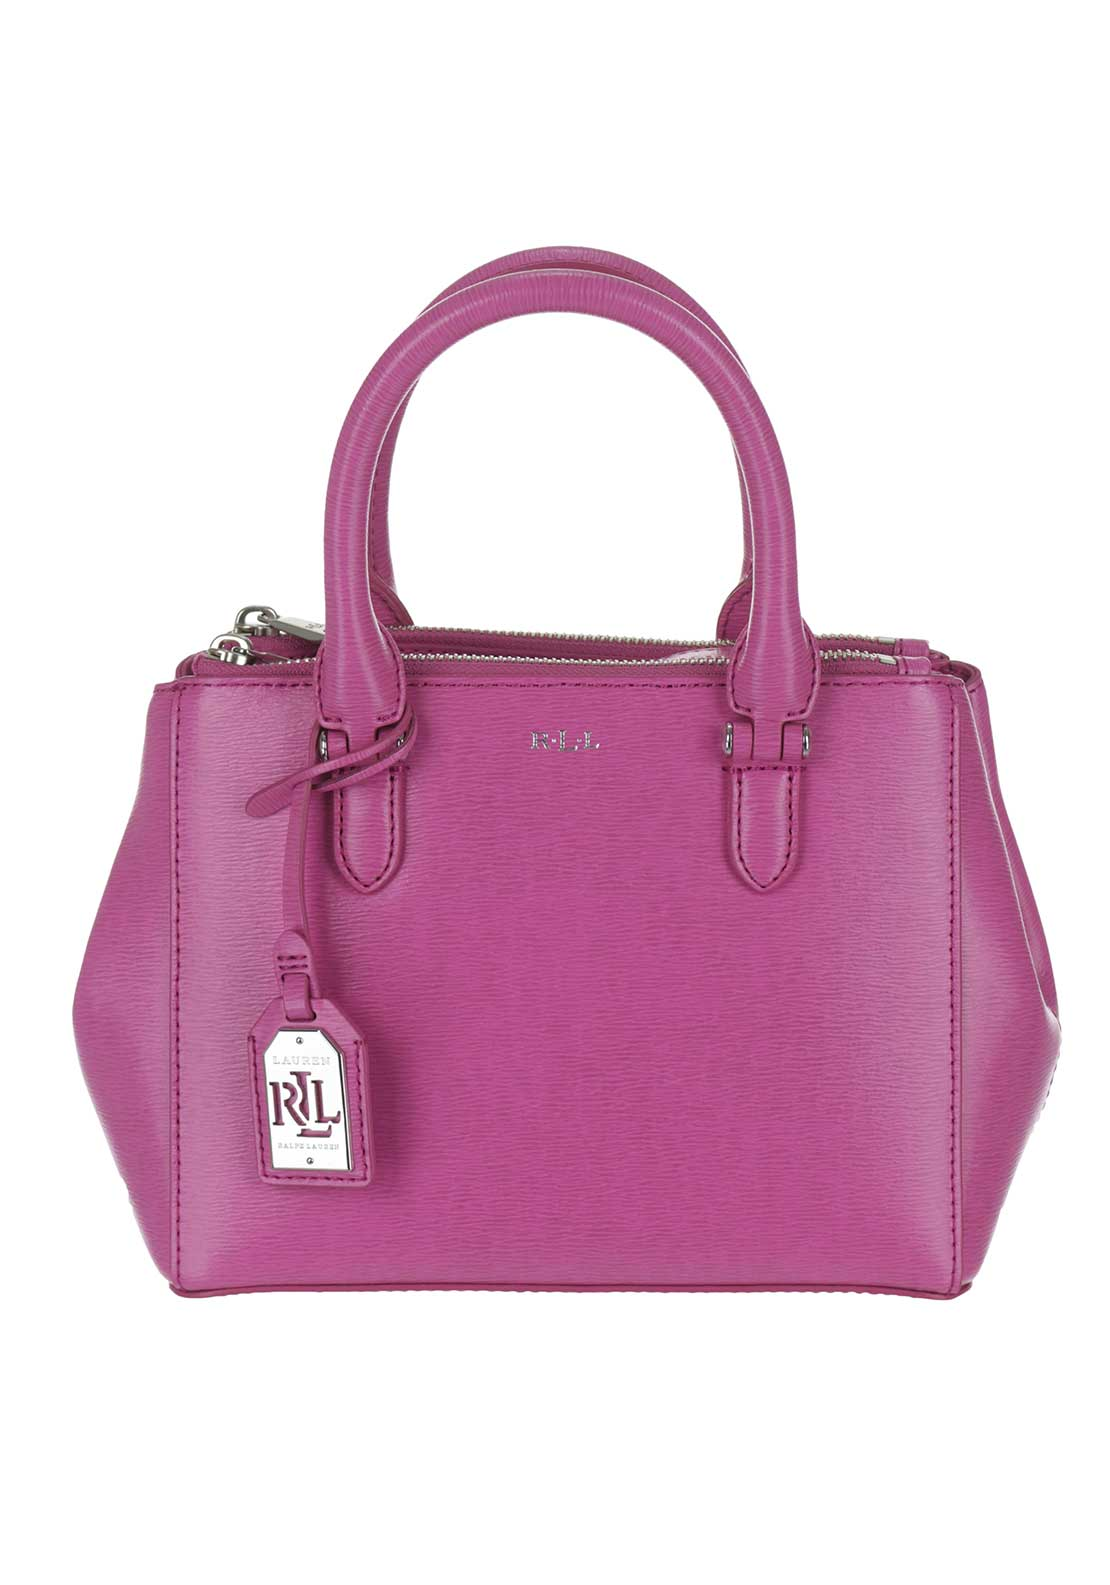 Ralph Lauren Newbury Leather Zip Mini Tote Bag, Pink